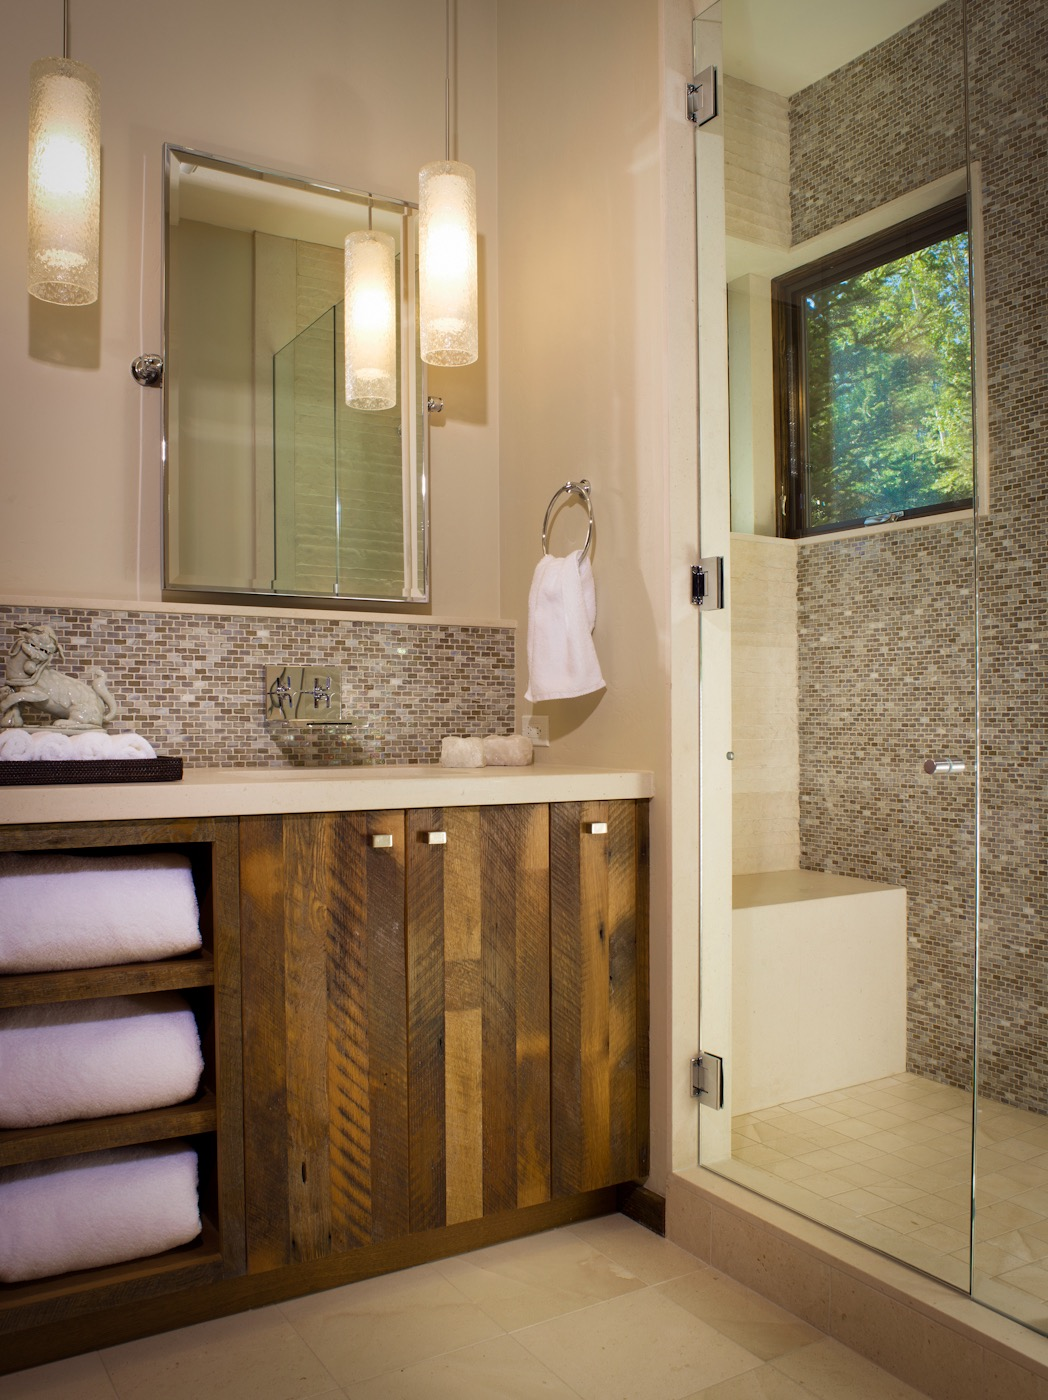 Walk In Shower Features Beautiful Mosaic Tile Wall (View 19 of 21)